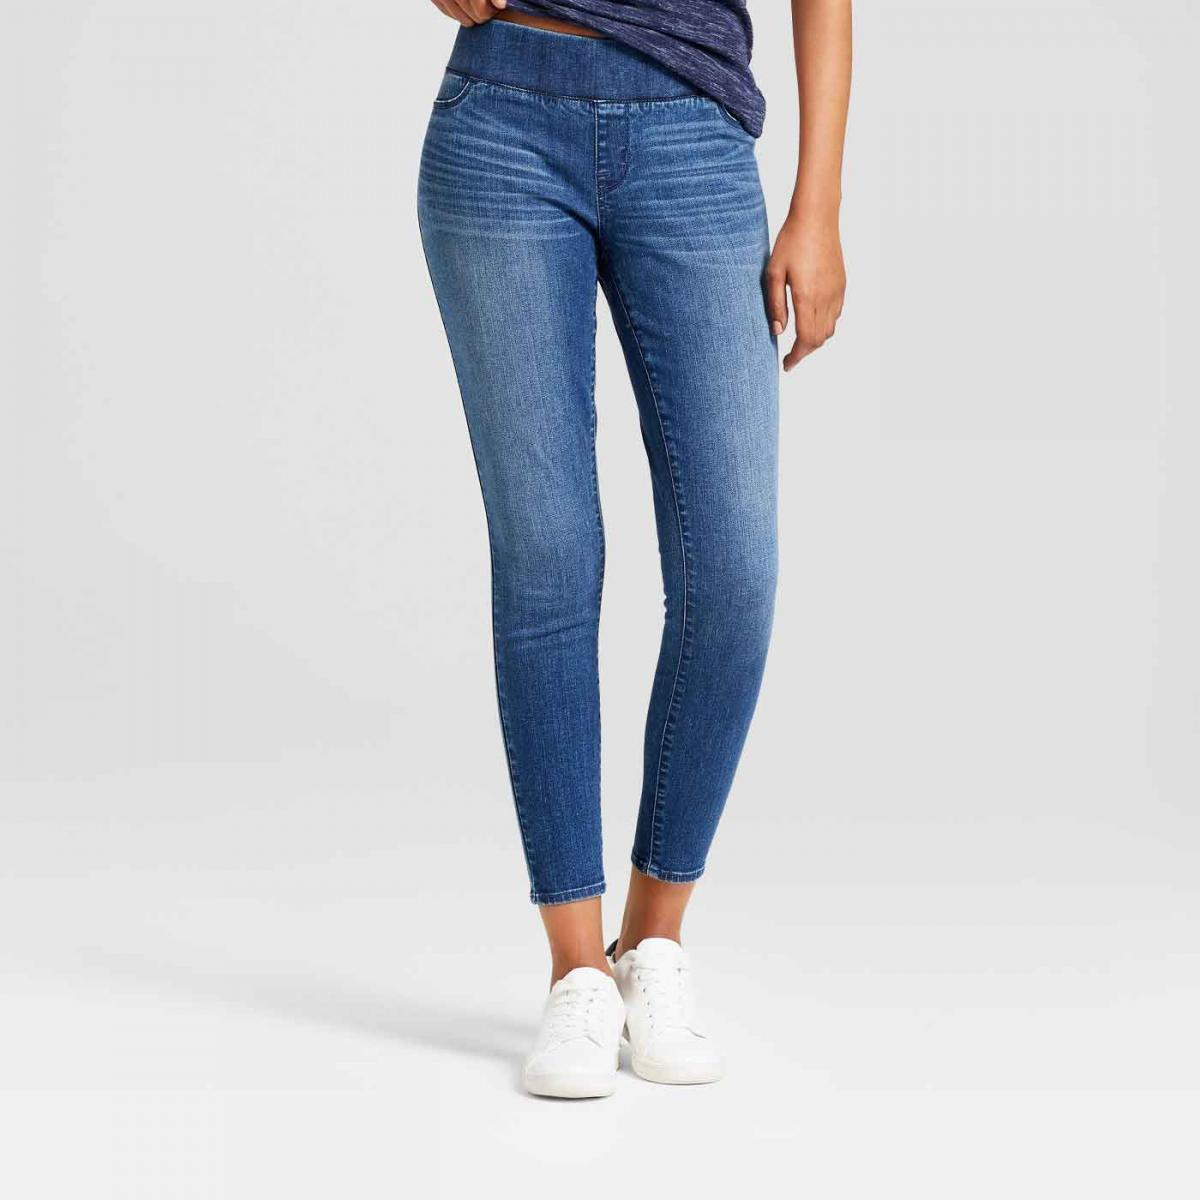 Isabel Maternity by Ingrid & Isabel Comfort-Fit Post Pregnancy Jeans